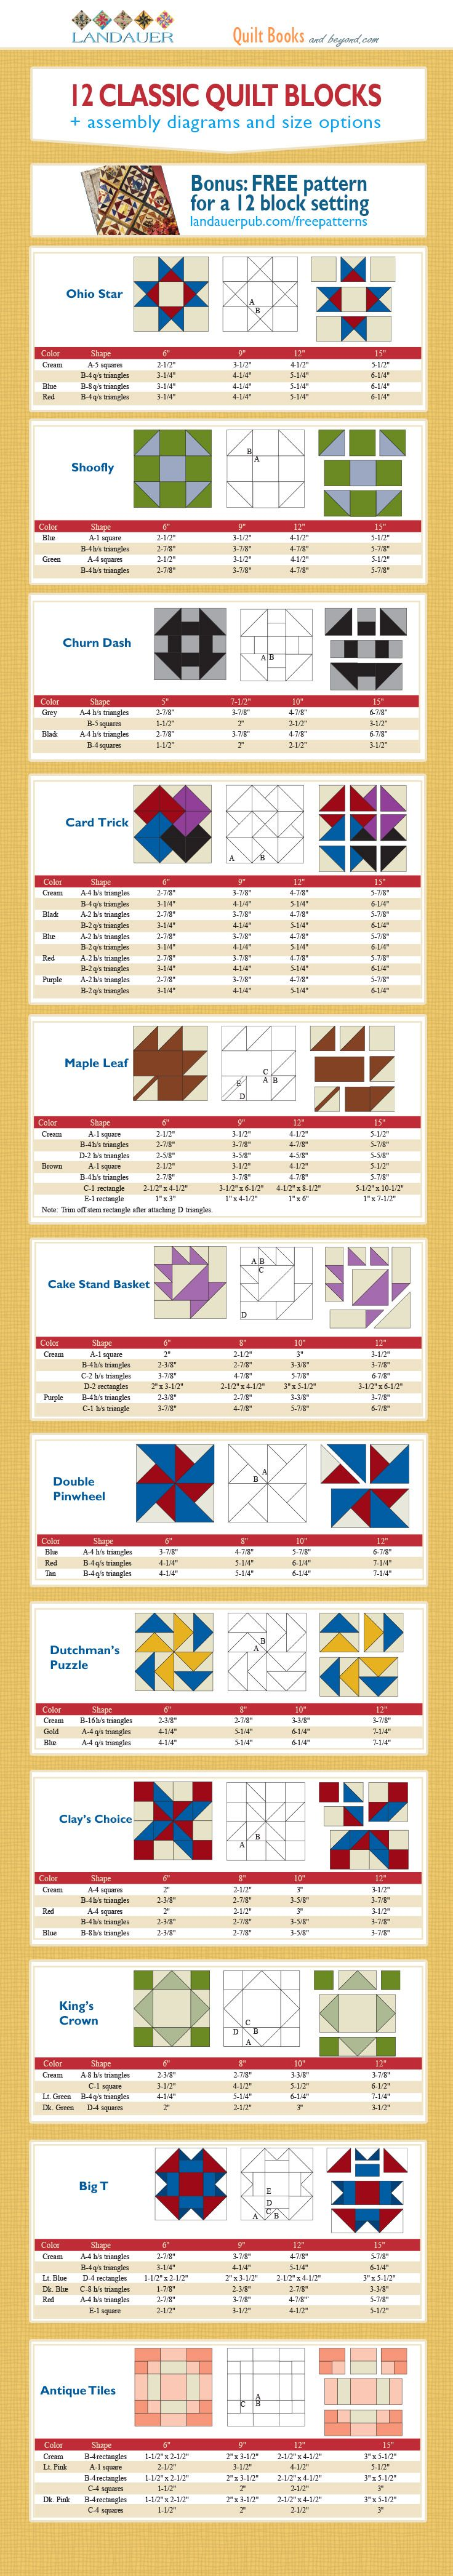 Infographic: 12 Classic Patchwork Quilt Blocks With Diagrams and Cutting Instructions in Multiple Sizes xxx